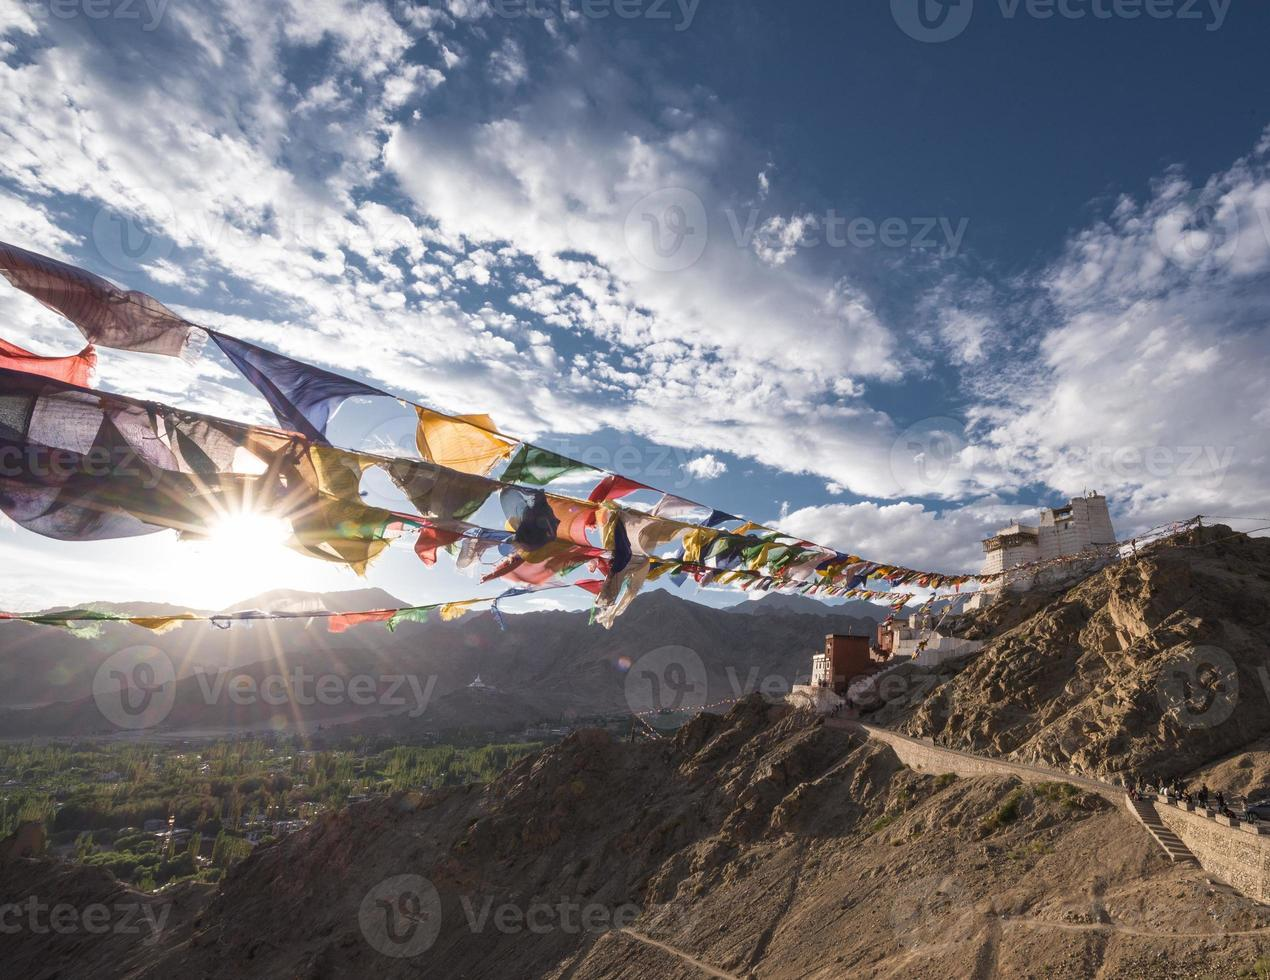 Namgyal Tsemo Gompa prayer flag photo